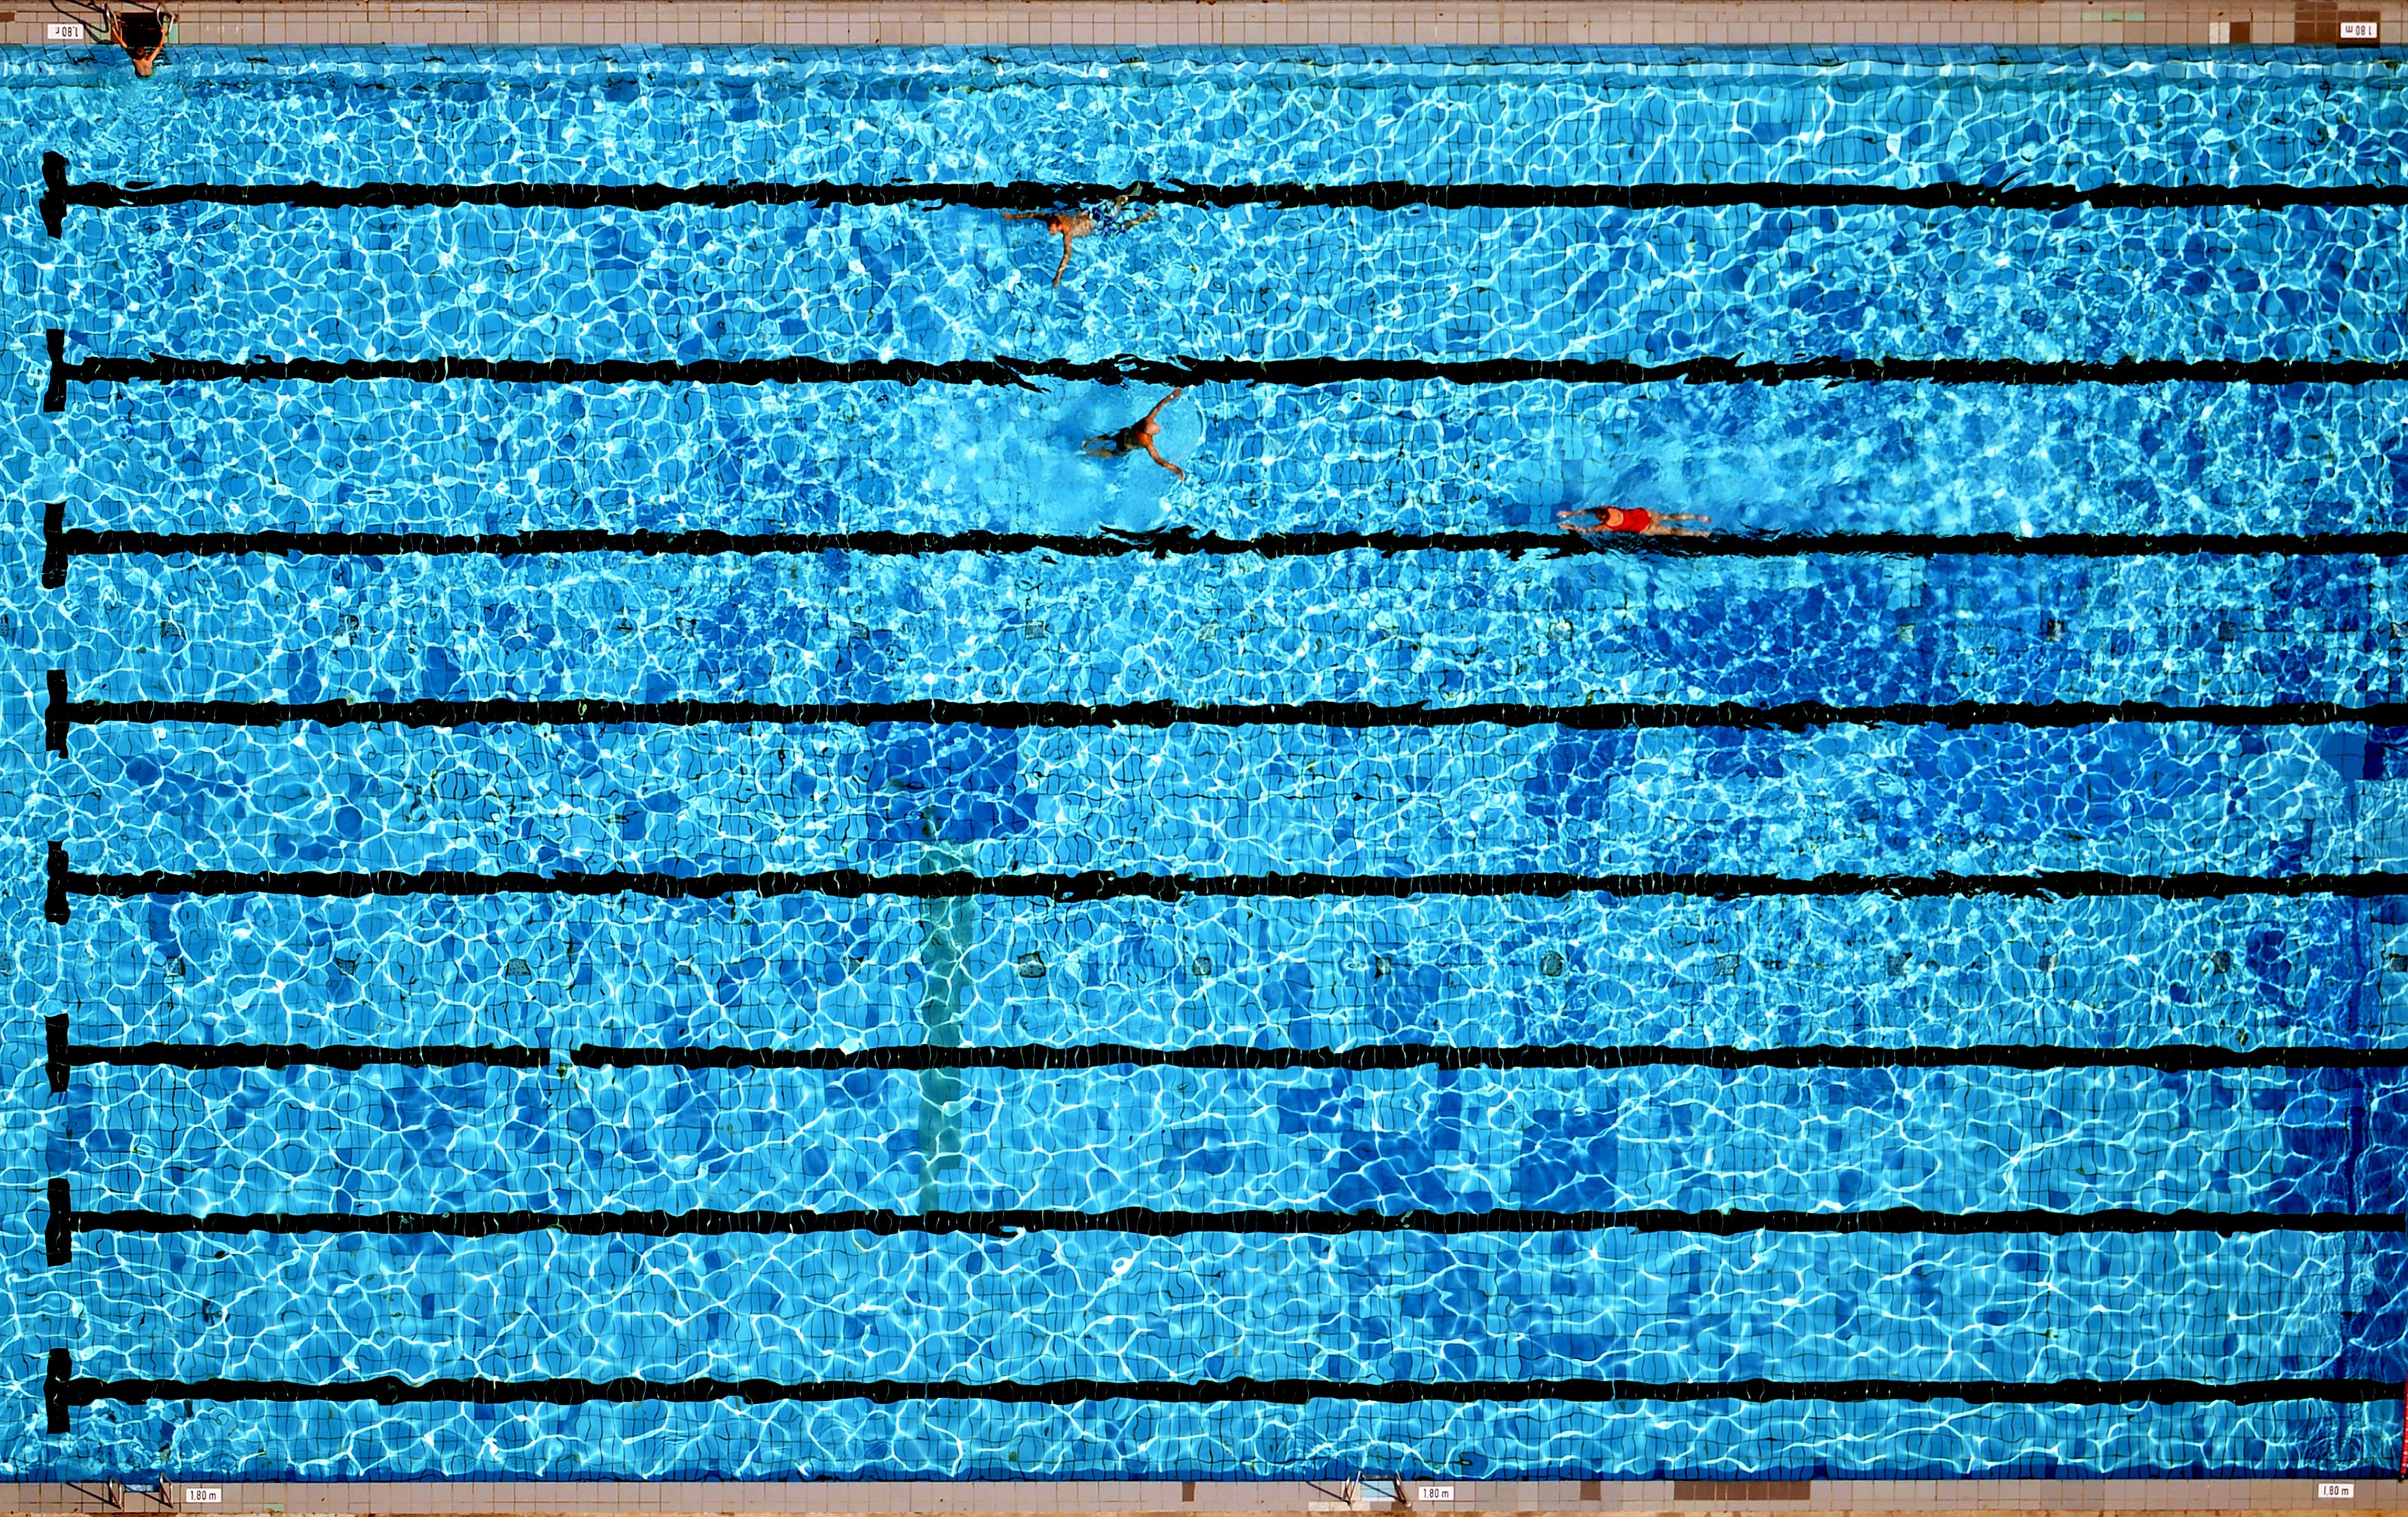 An aerial view shows a swimming pool.